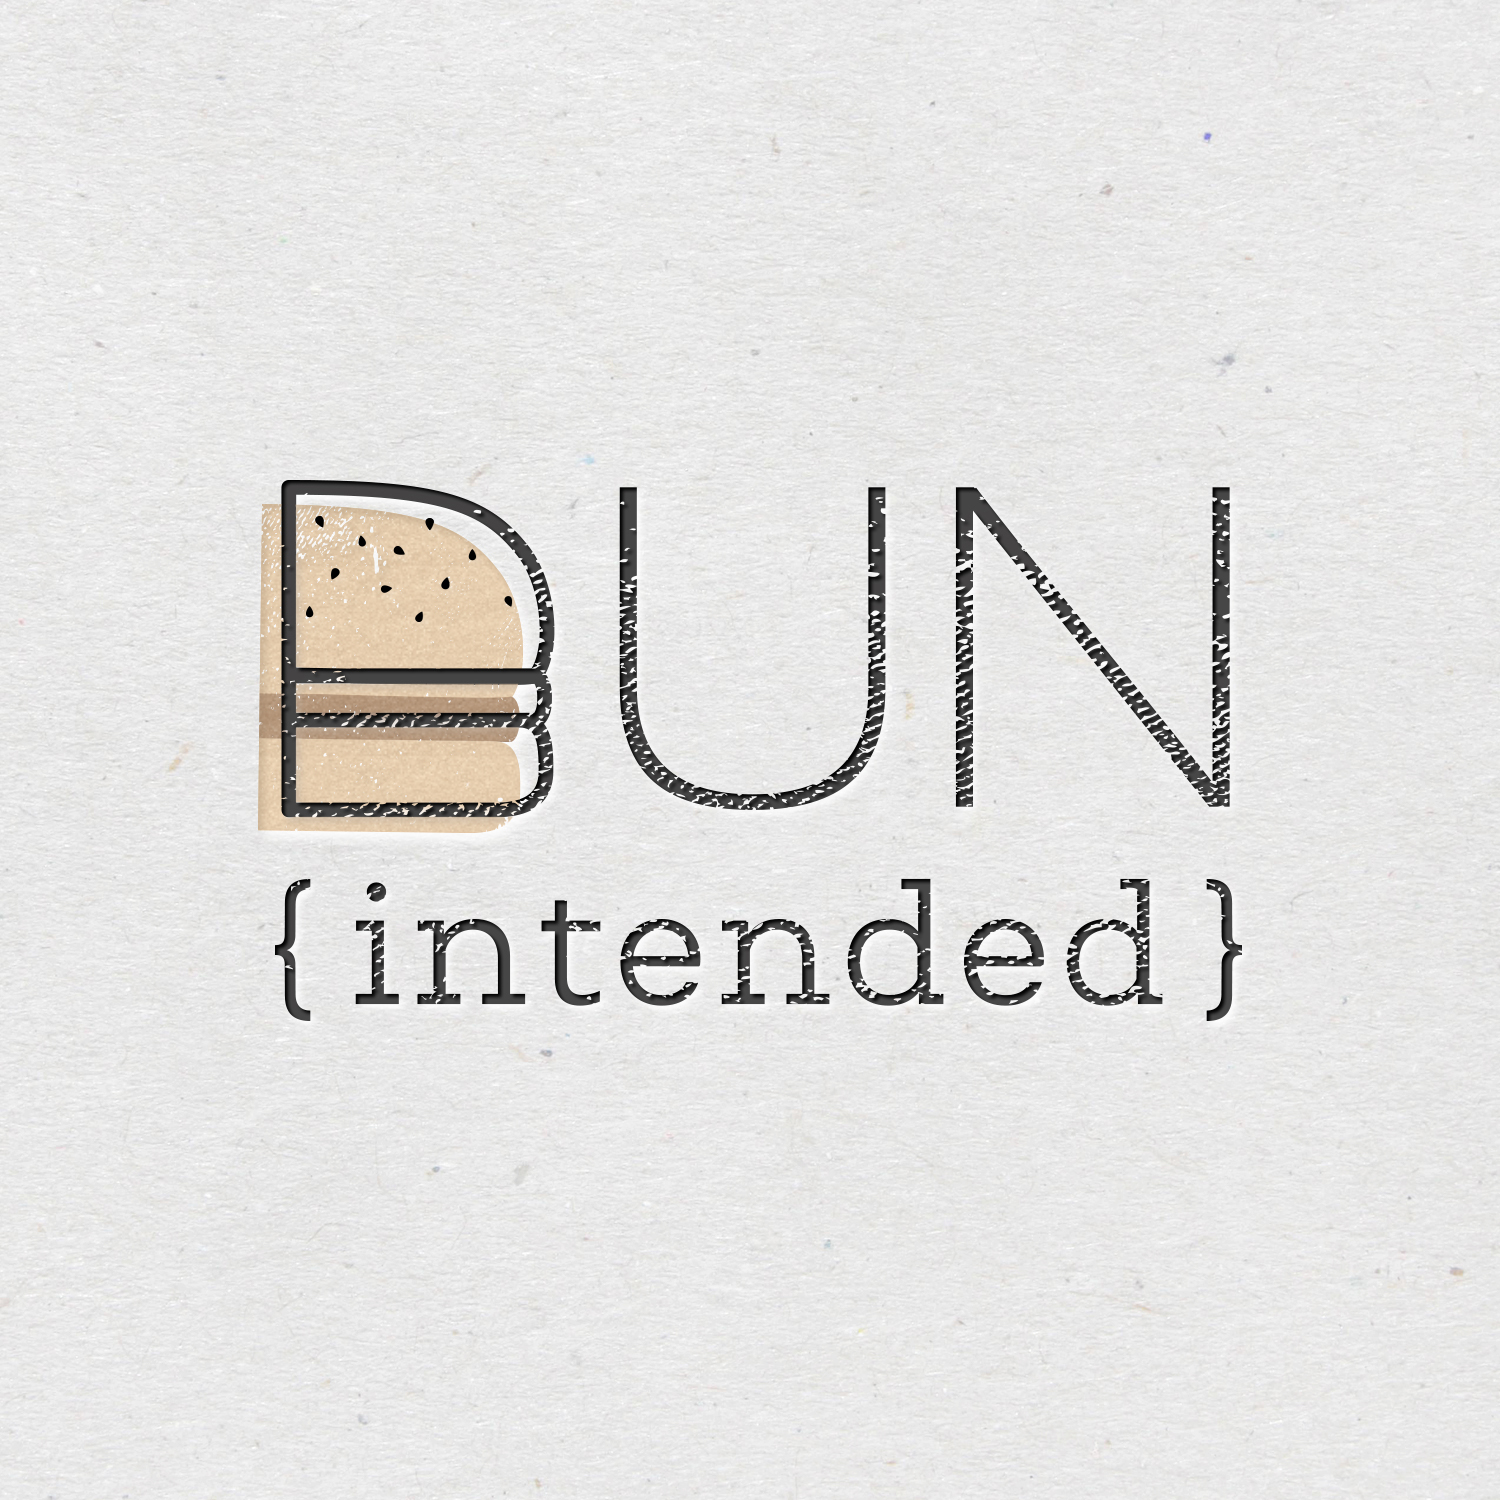 Bun Intended | Burger Joint Logo by Akula Kreative